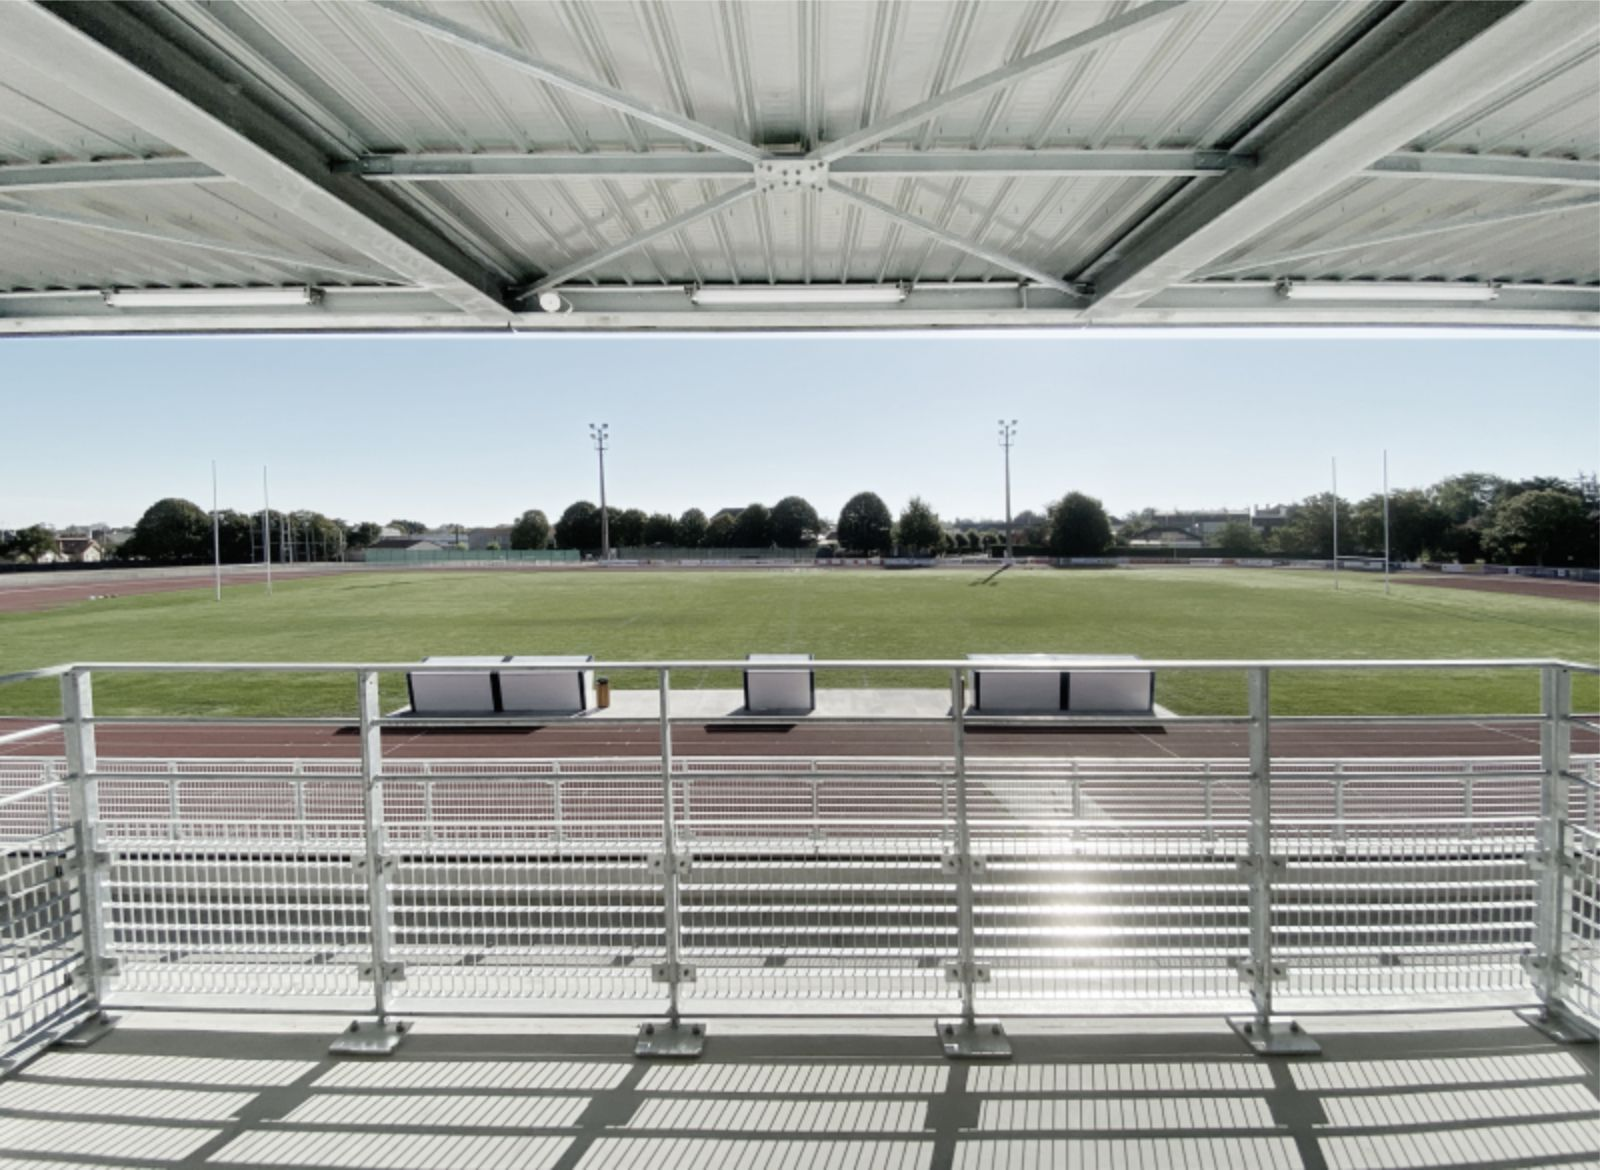 Stadium of Thouars